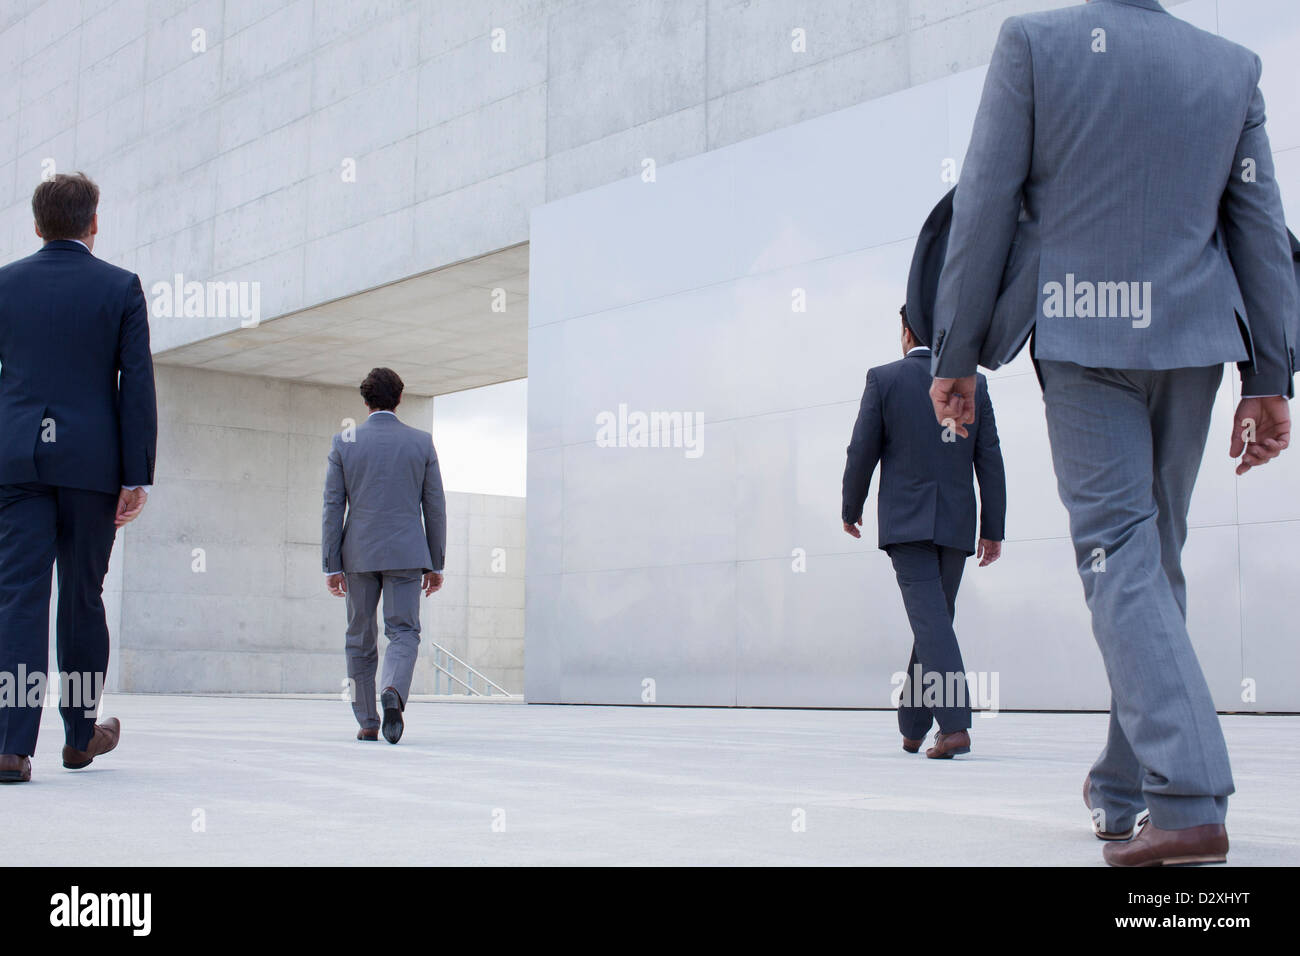 Businessmen walking toward cultural center - Stock Image